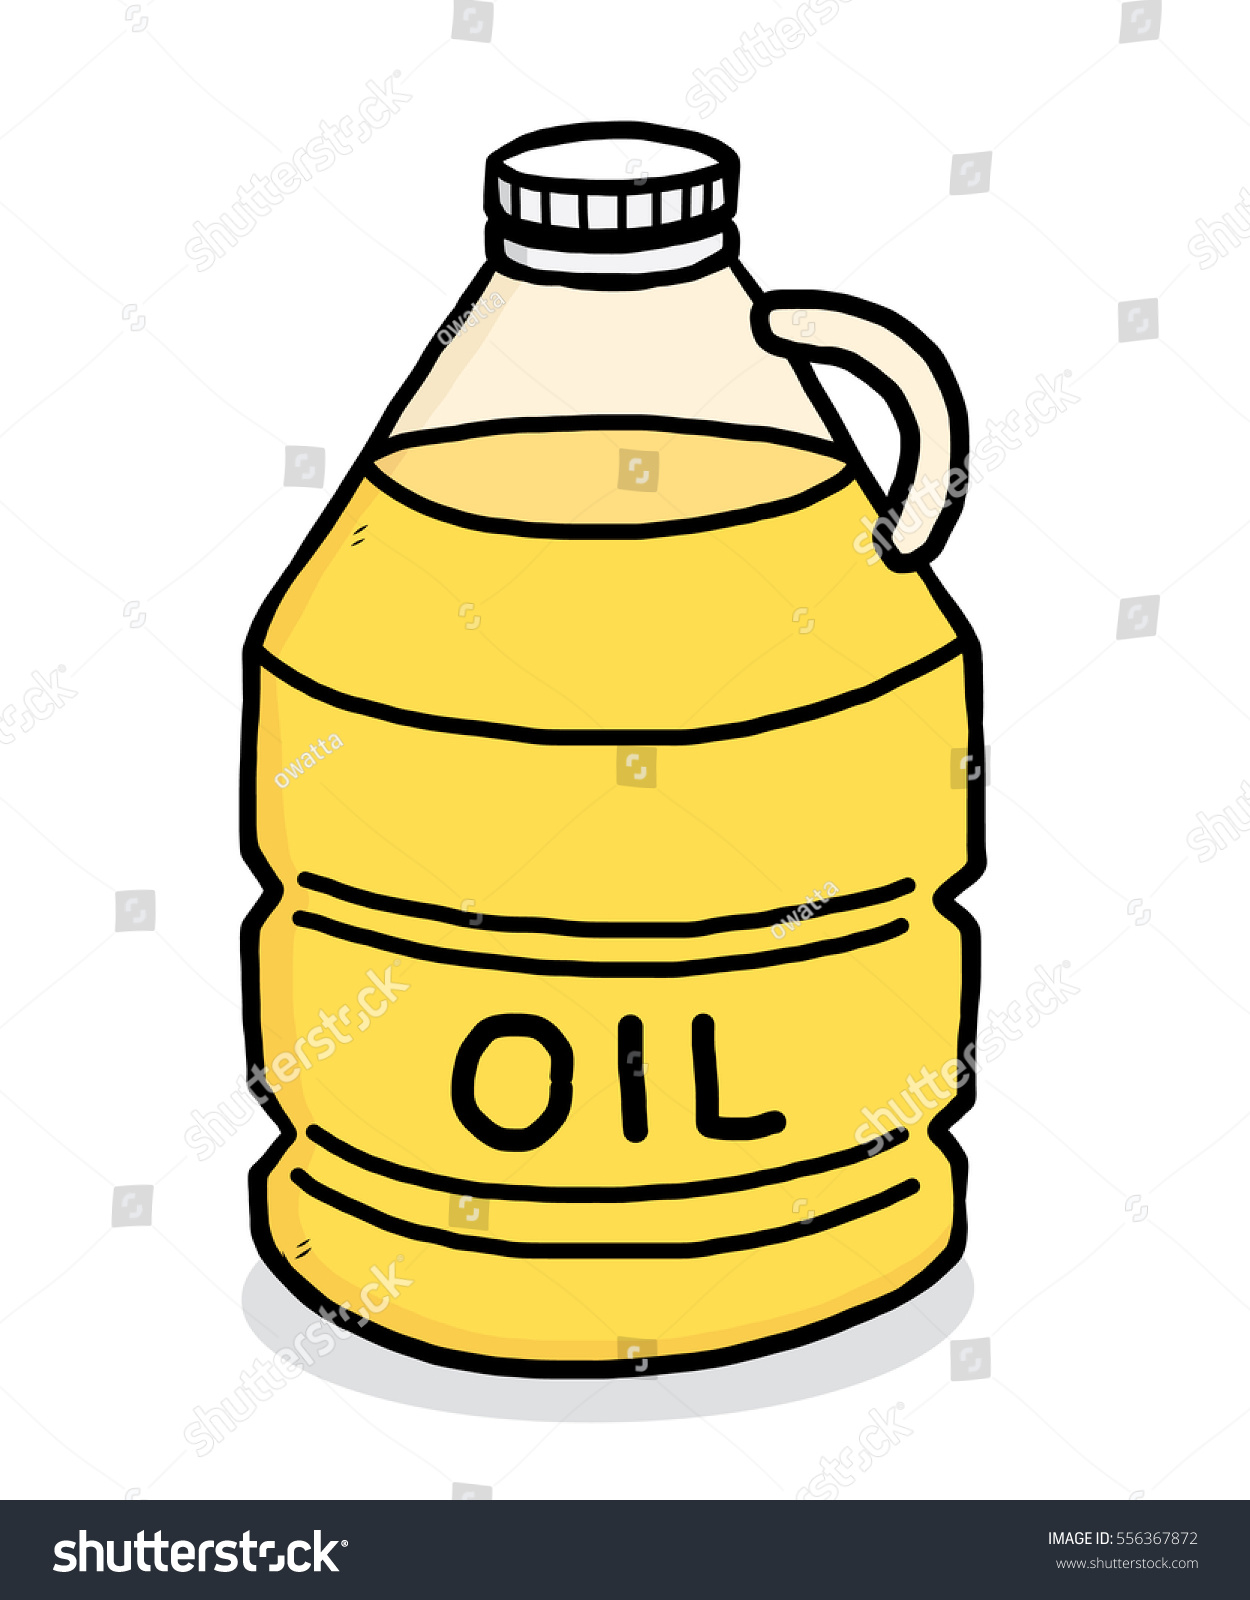 vegetable oil bottle cartoon vector illustration stock vector rh shutterstock com Essential Oil Bottle Outline Motor Oil Bottle